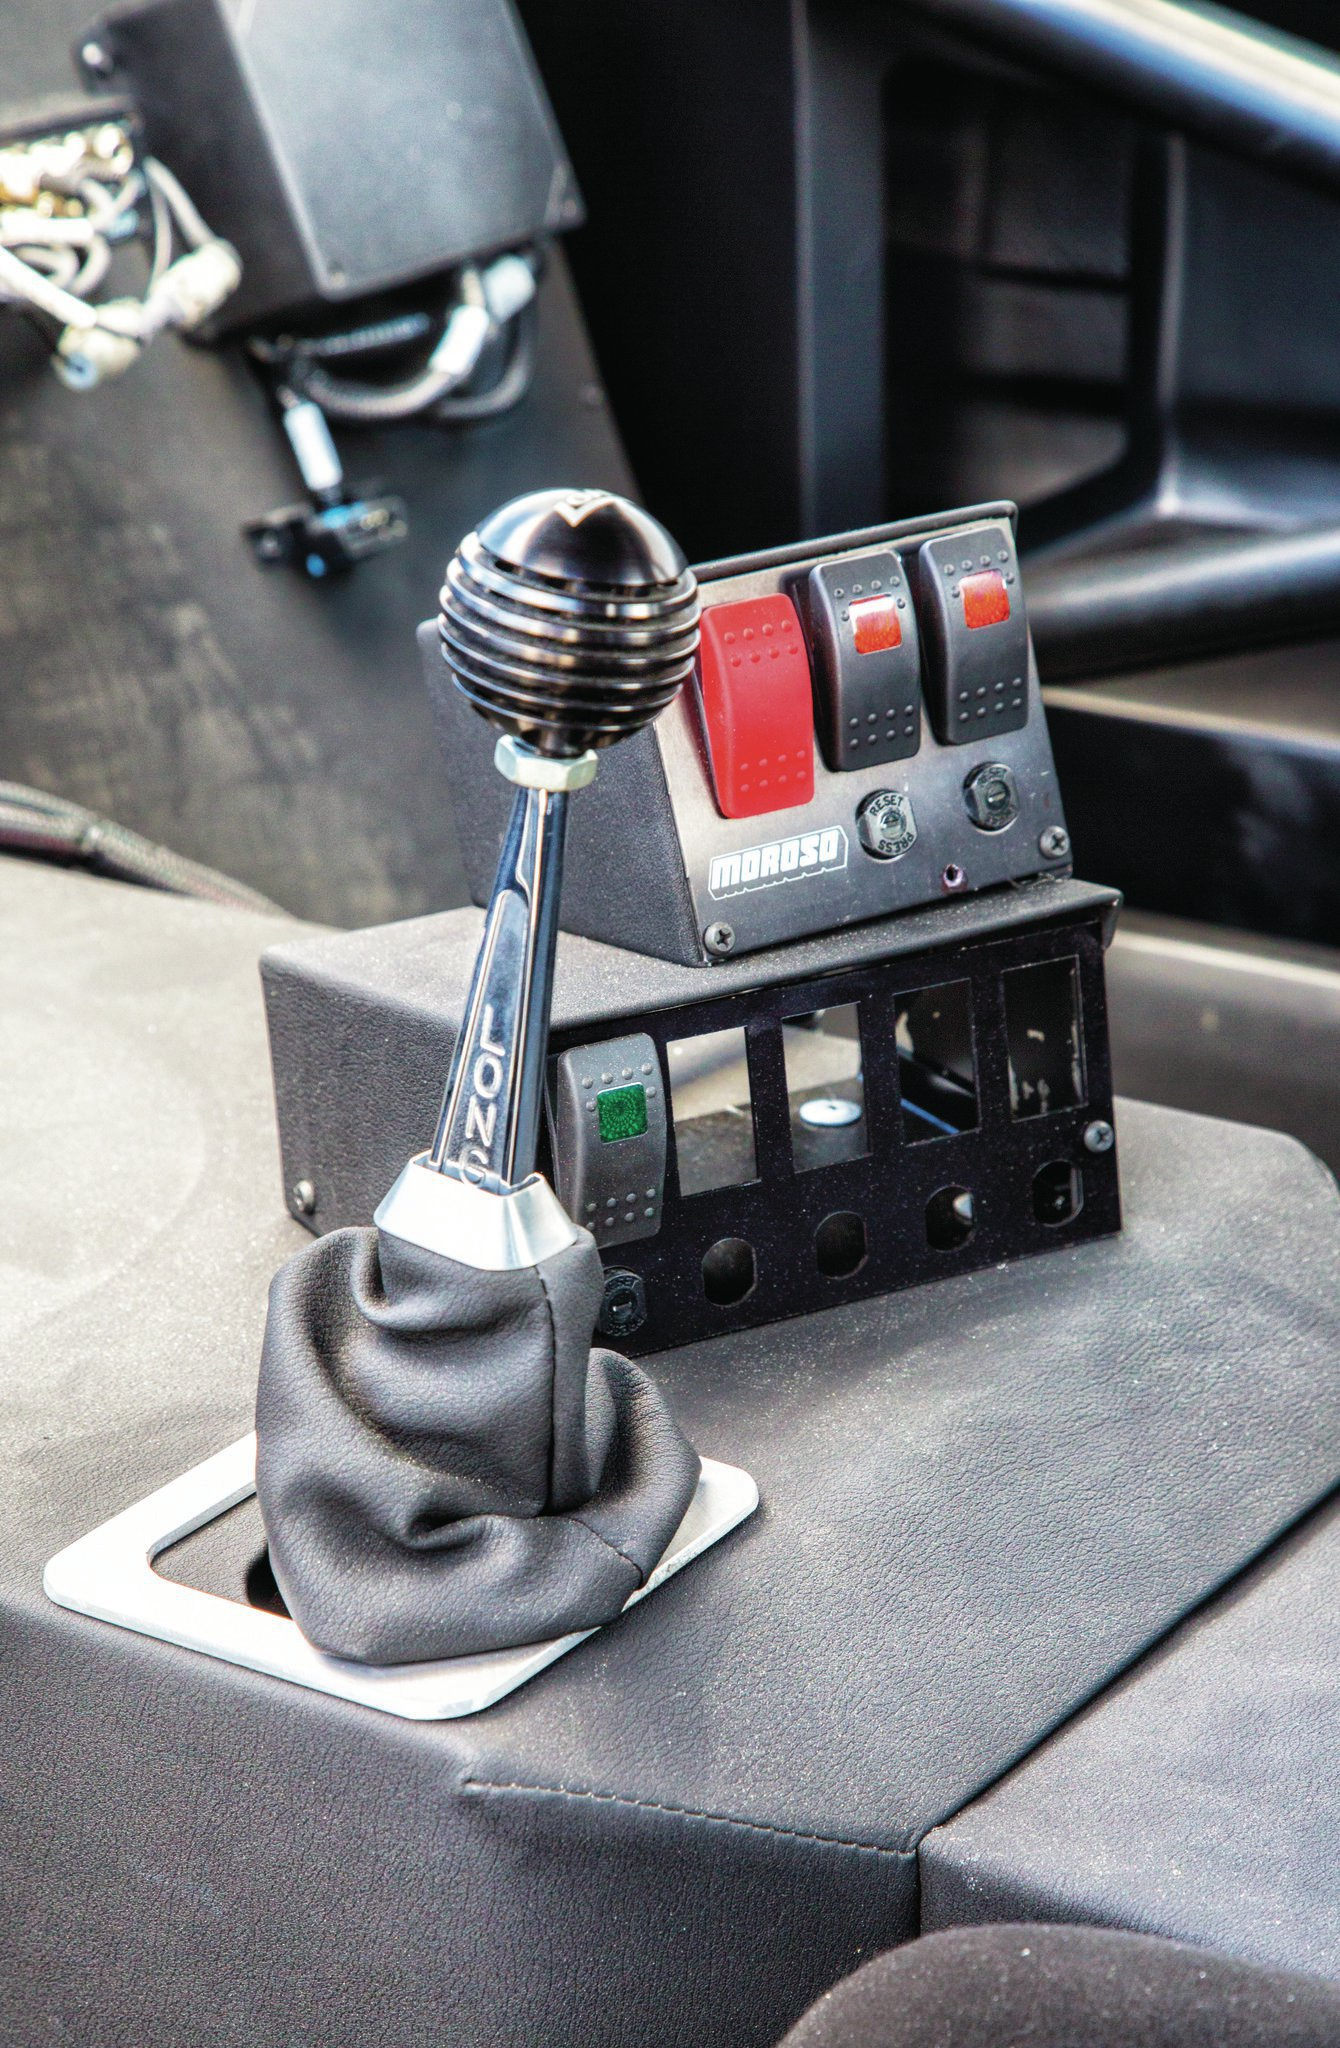 A Long shifter connects the driver to a five-speed G-Force trans.